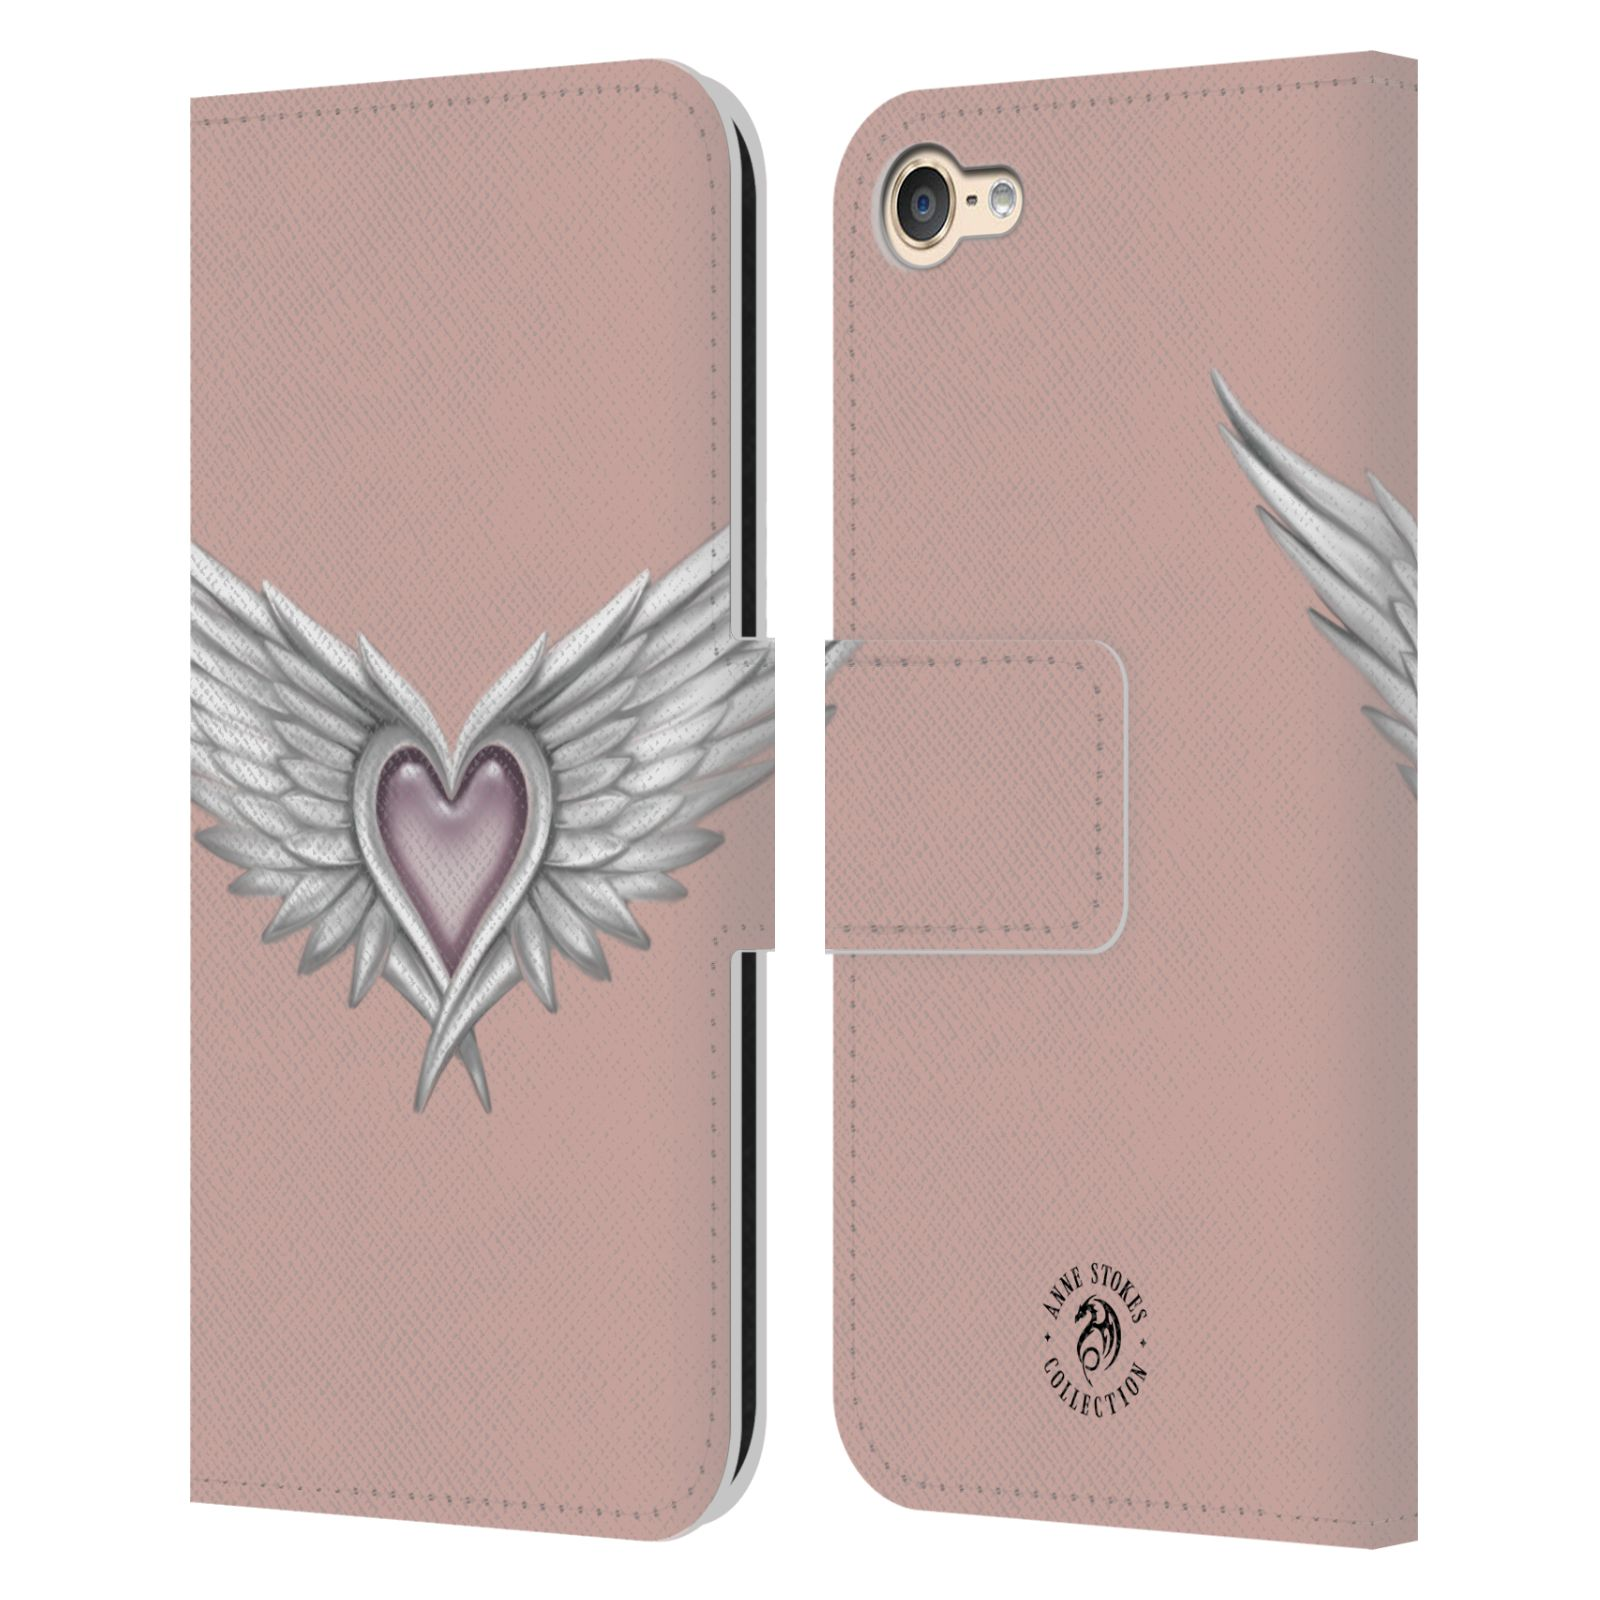 ANNE-STOKES-MERMAID-AND-ANGELS-LEATHER-BOOK-WALLET-CASE-FOR-APPLE-iPOD-TOUCH-MP3